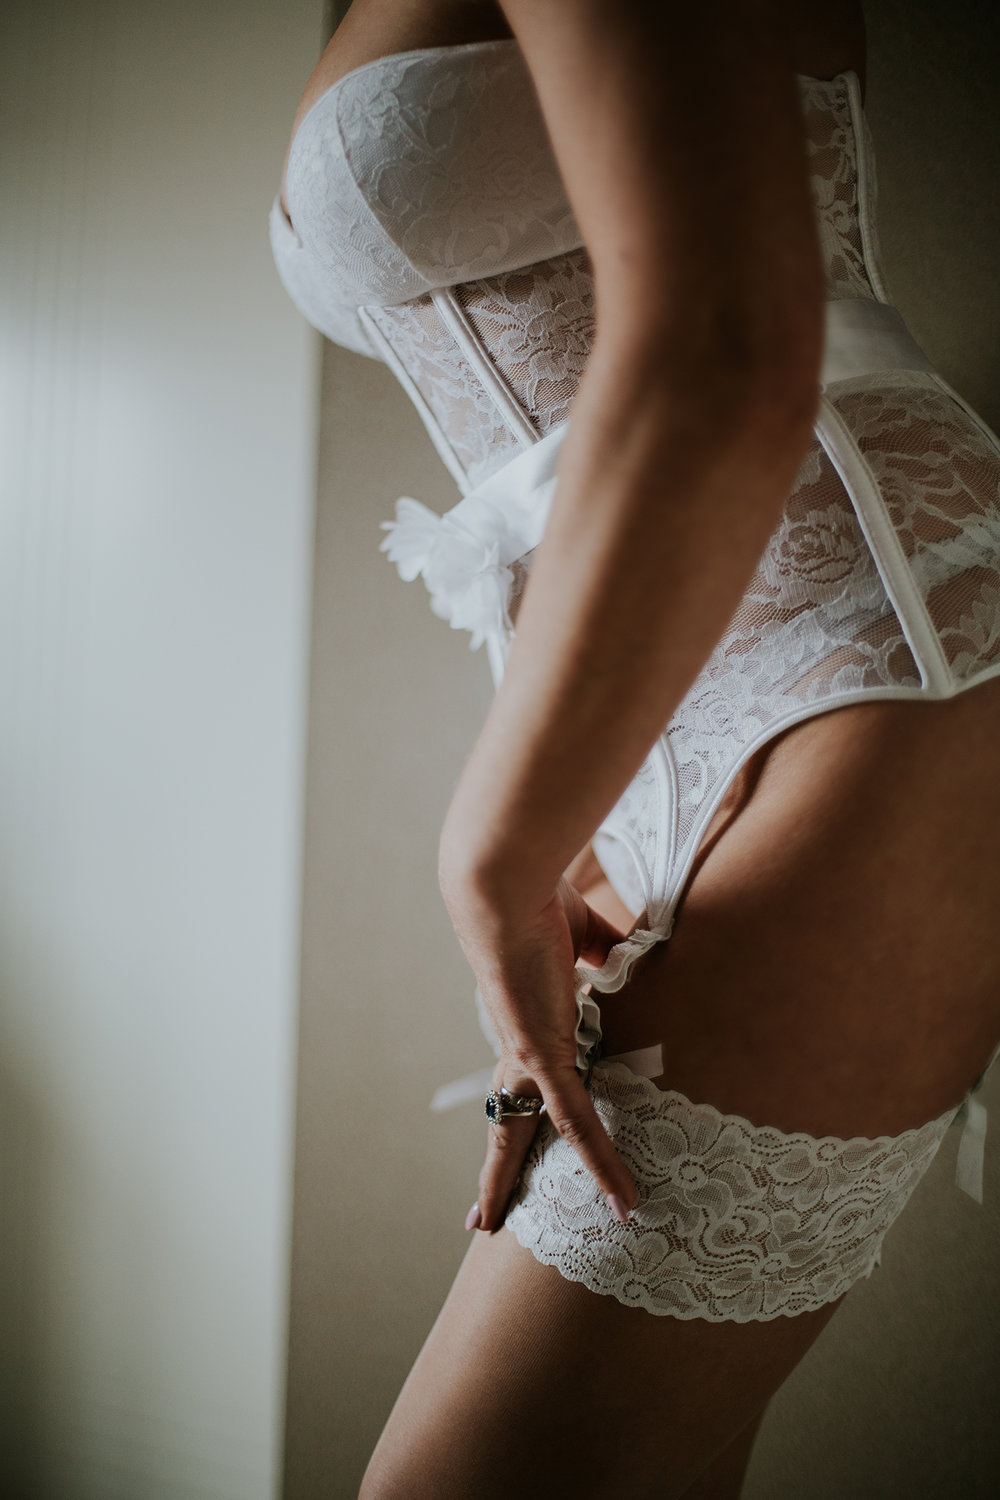 Bridal boudoir in Glasgow. Female boudoir photographer.